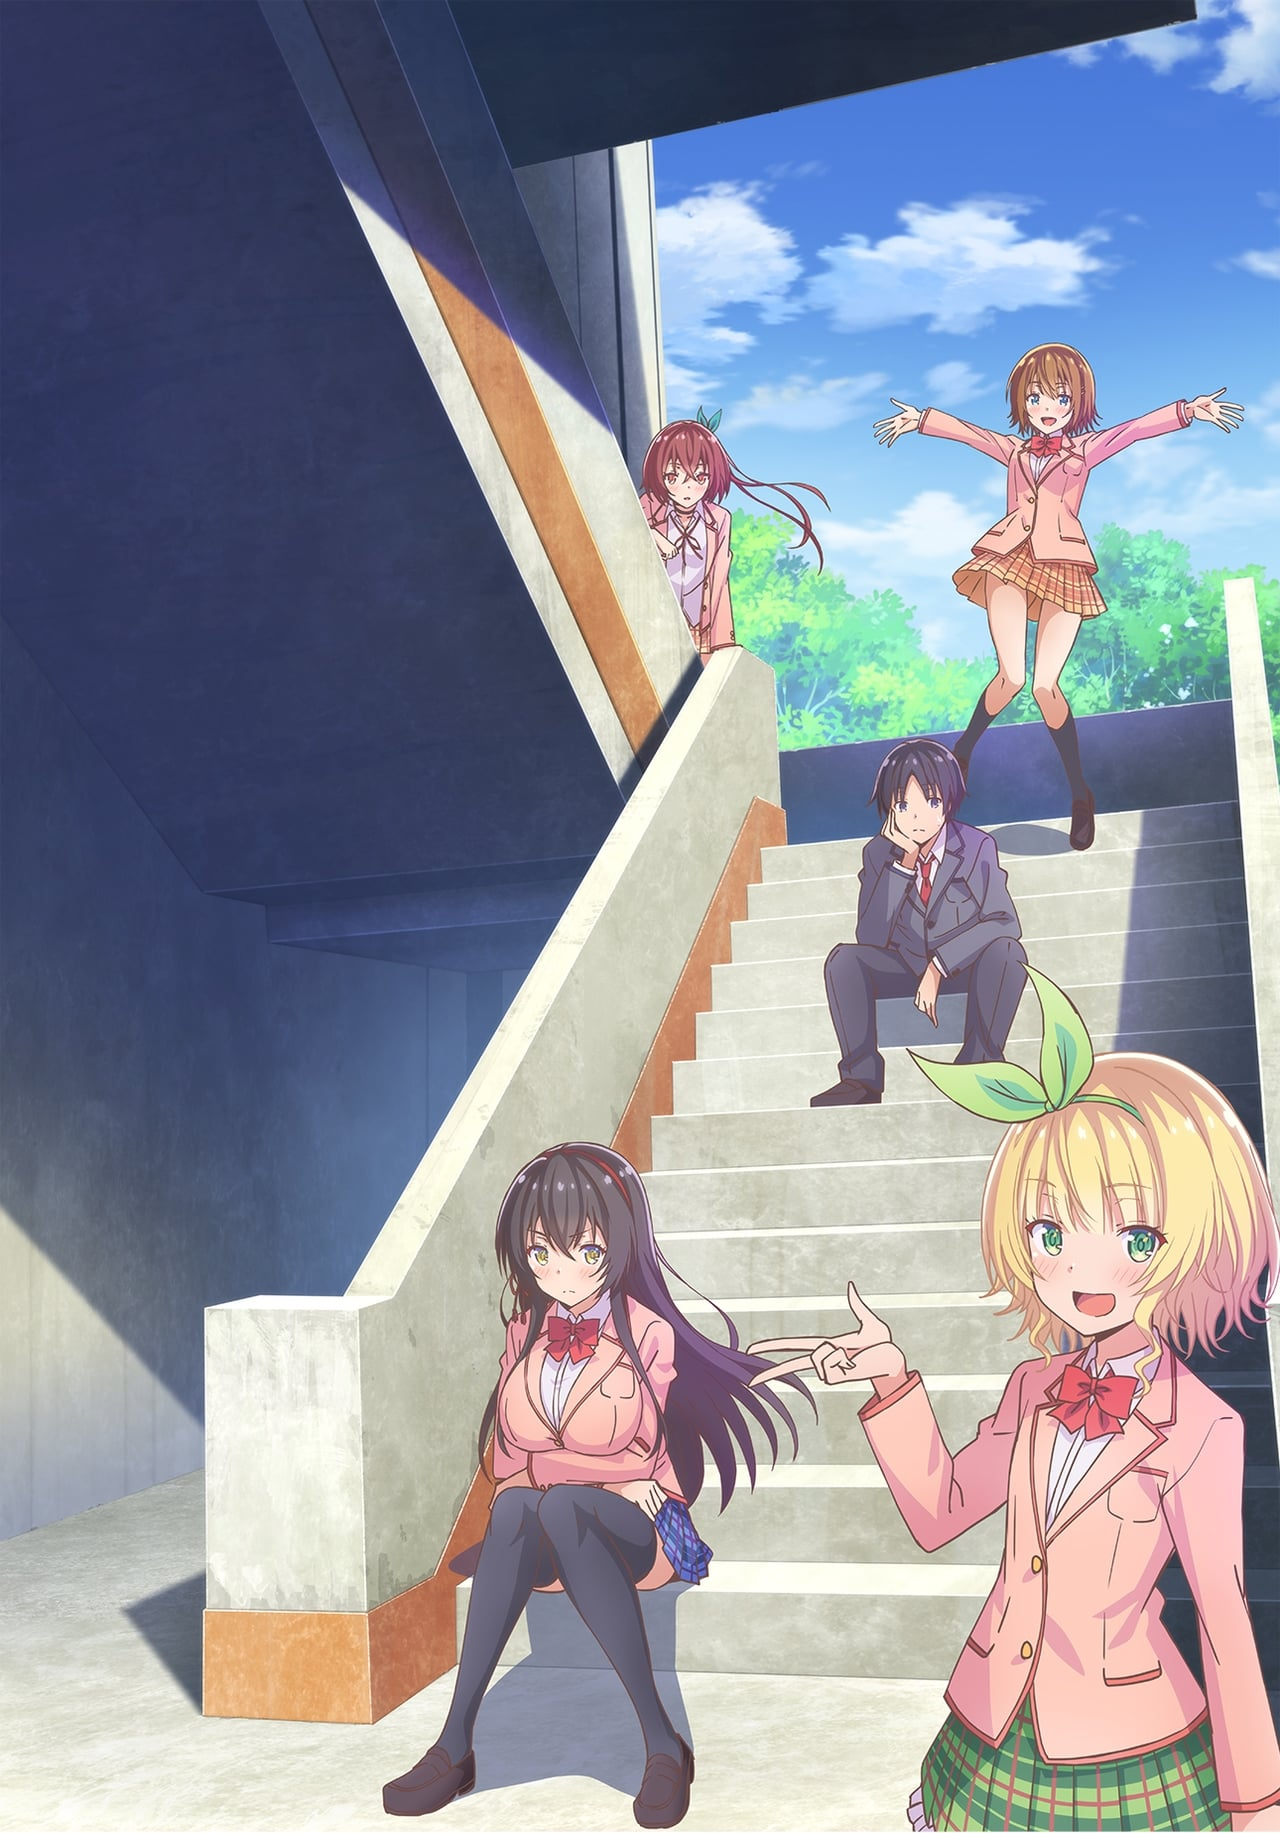 Hensuki: Are You Willing To Fall In Love With A Pervert, As Long As She`s A Cutie? Season 1